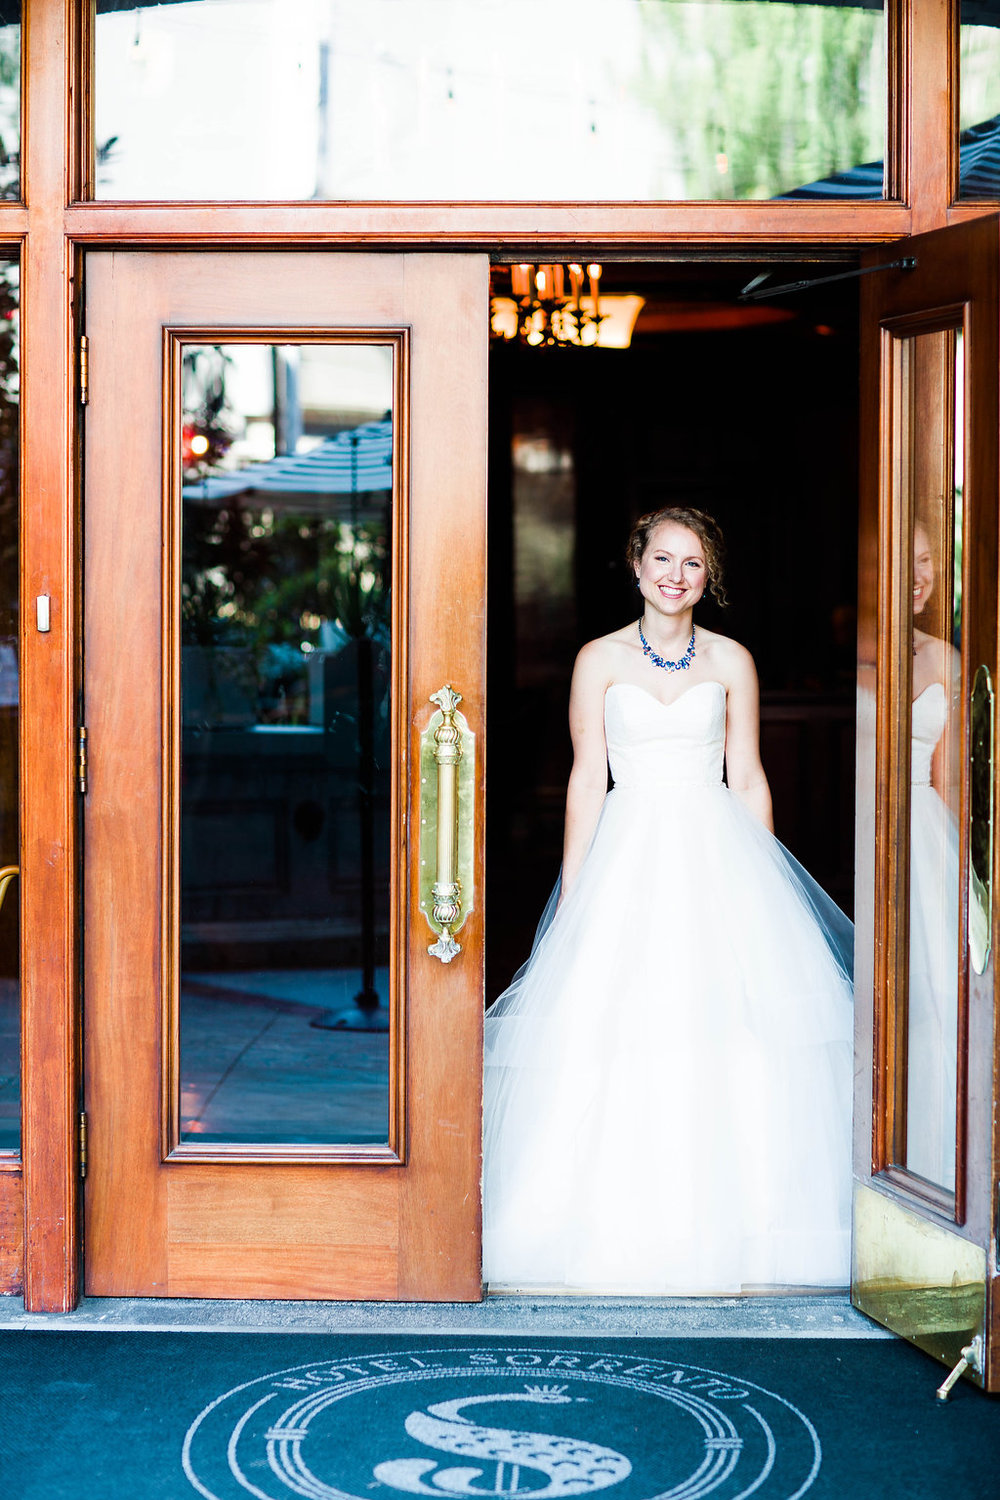 Nissa+Jesse_Wedding_Seattle_SoleRepairShop_6252015_295.jpg